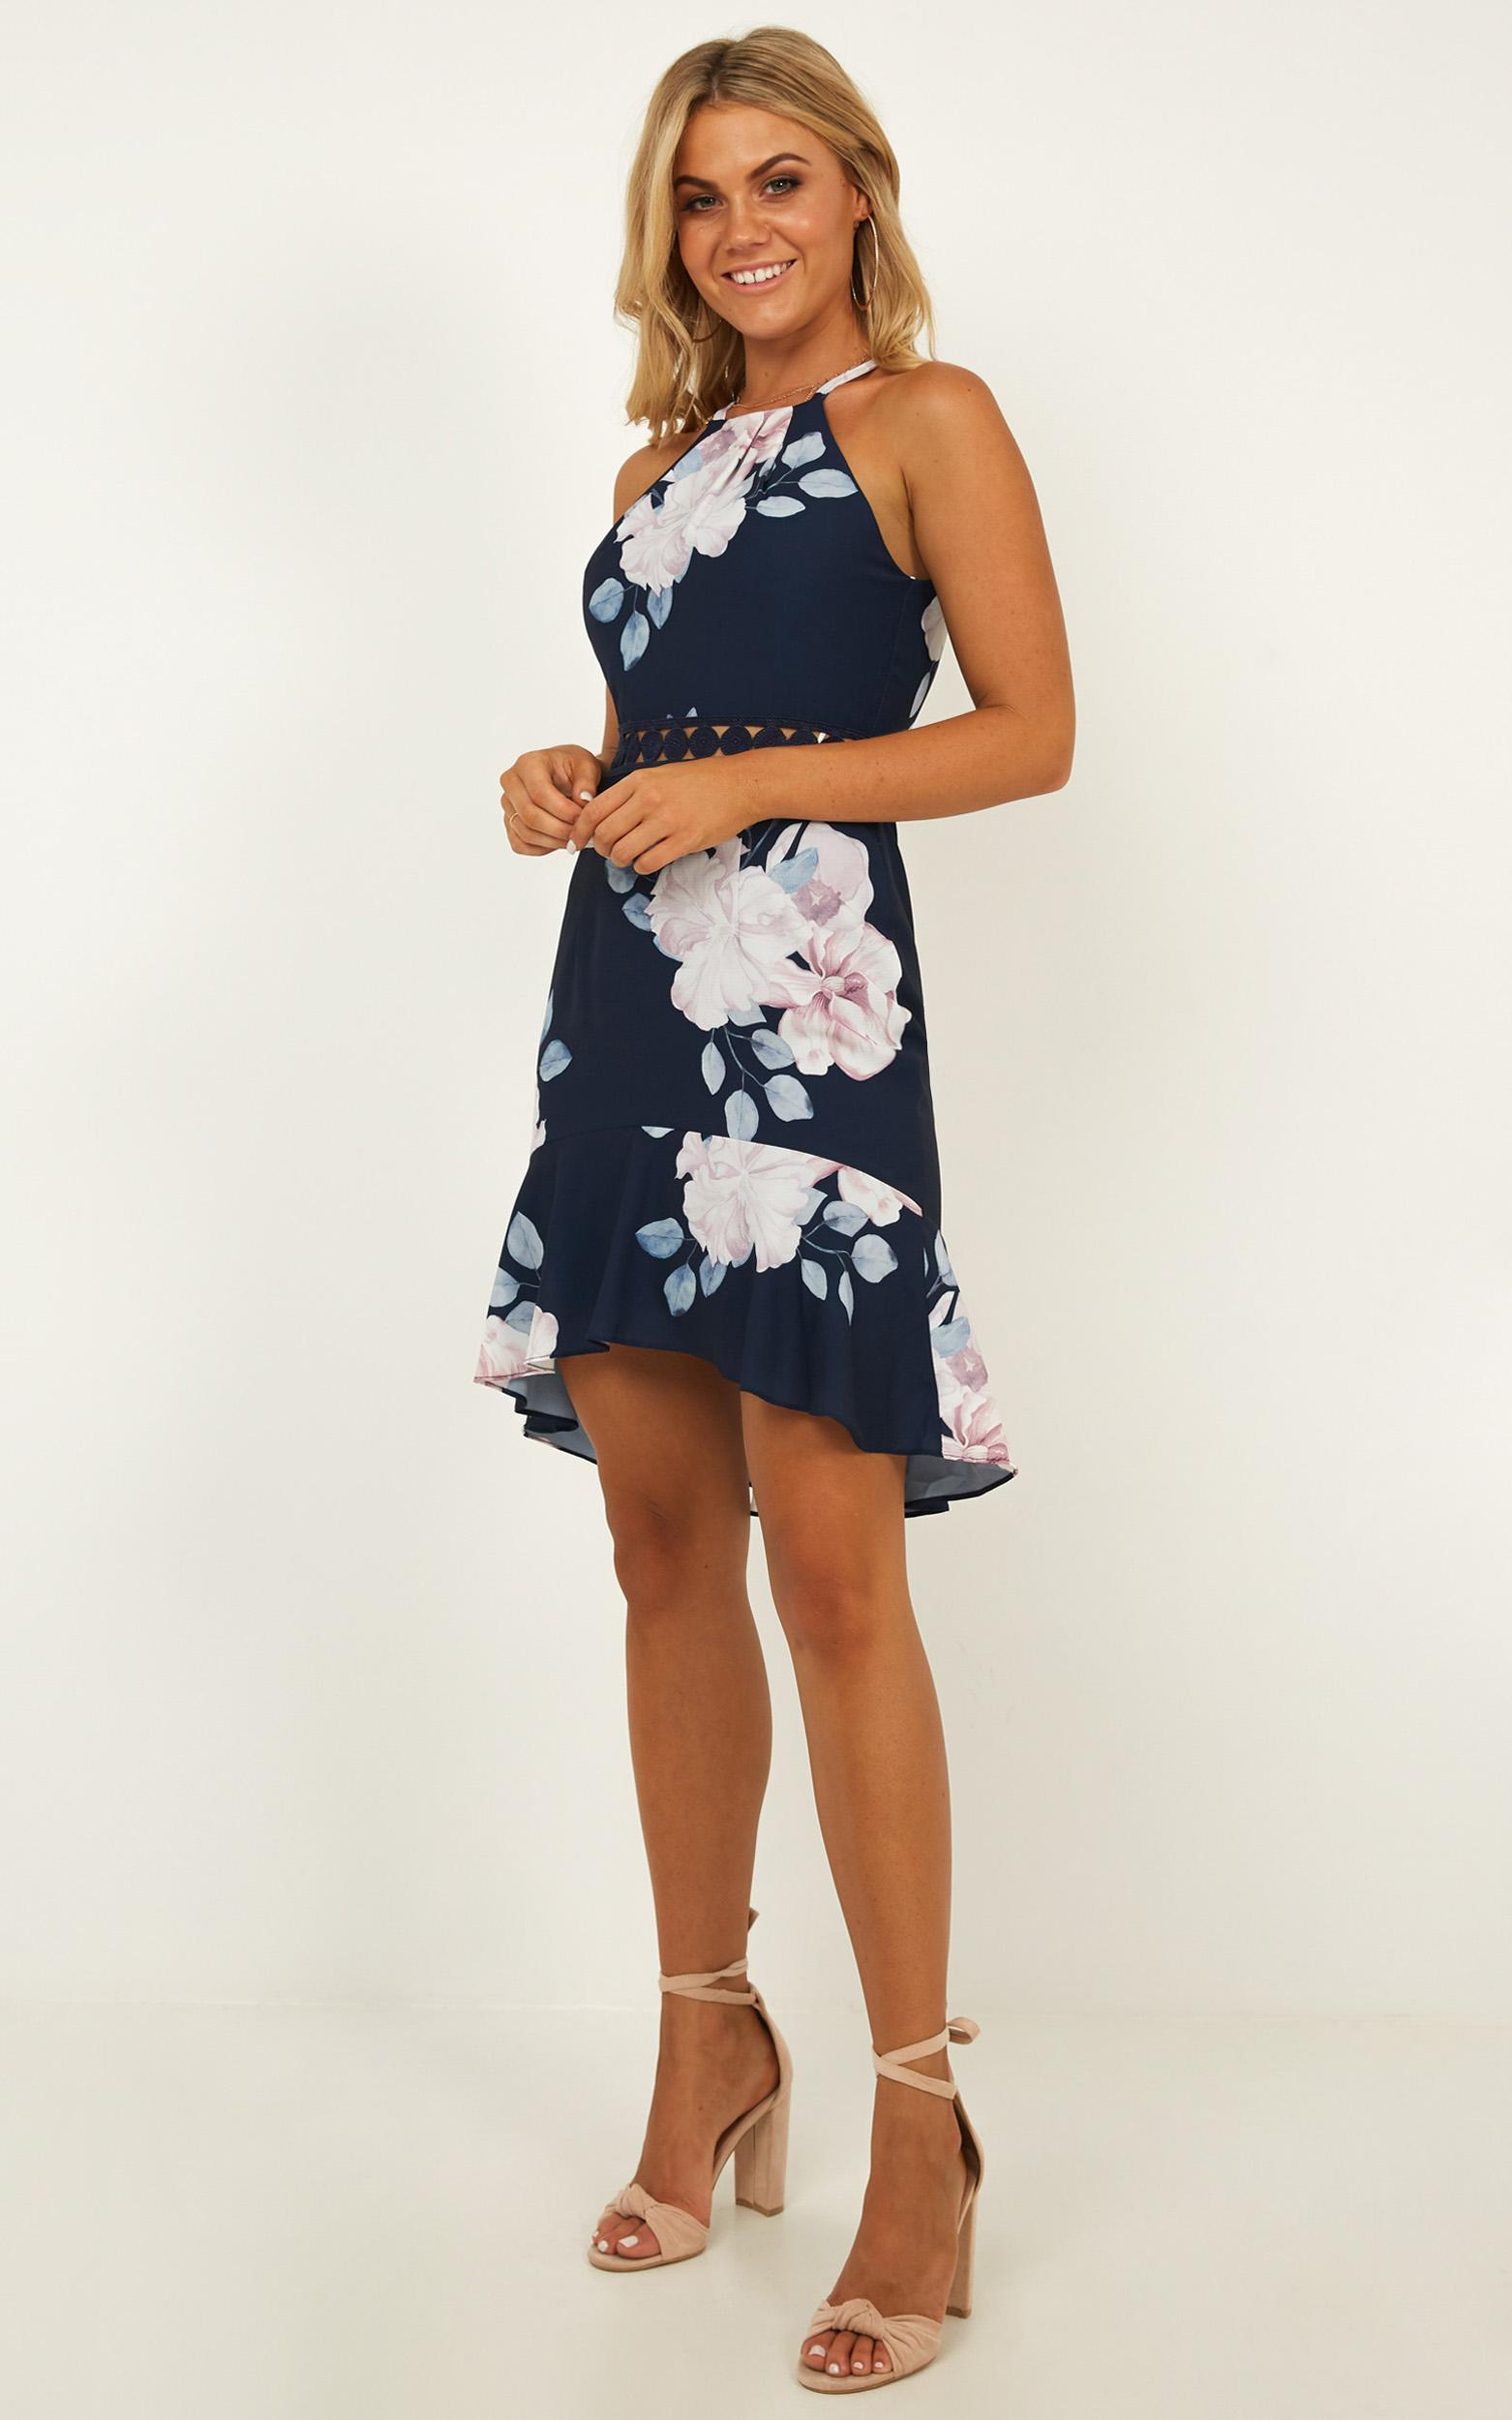 Blue Moon Dress in navy floral - 14 (XL), Navy, hi-res image number null